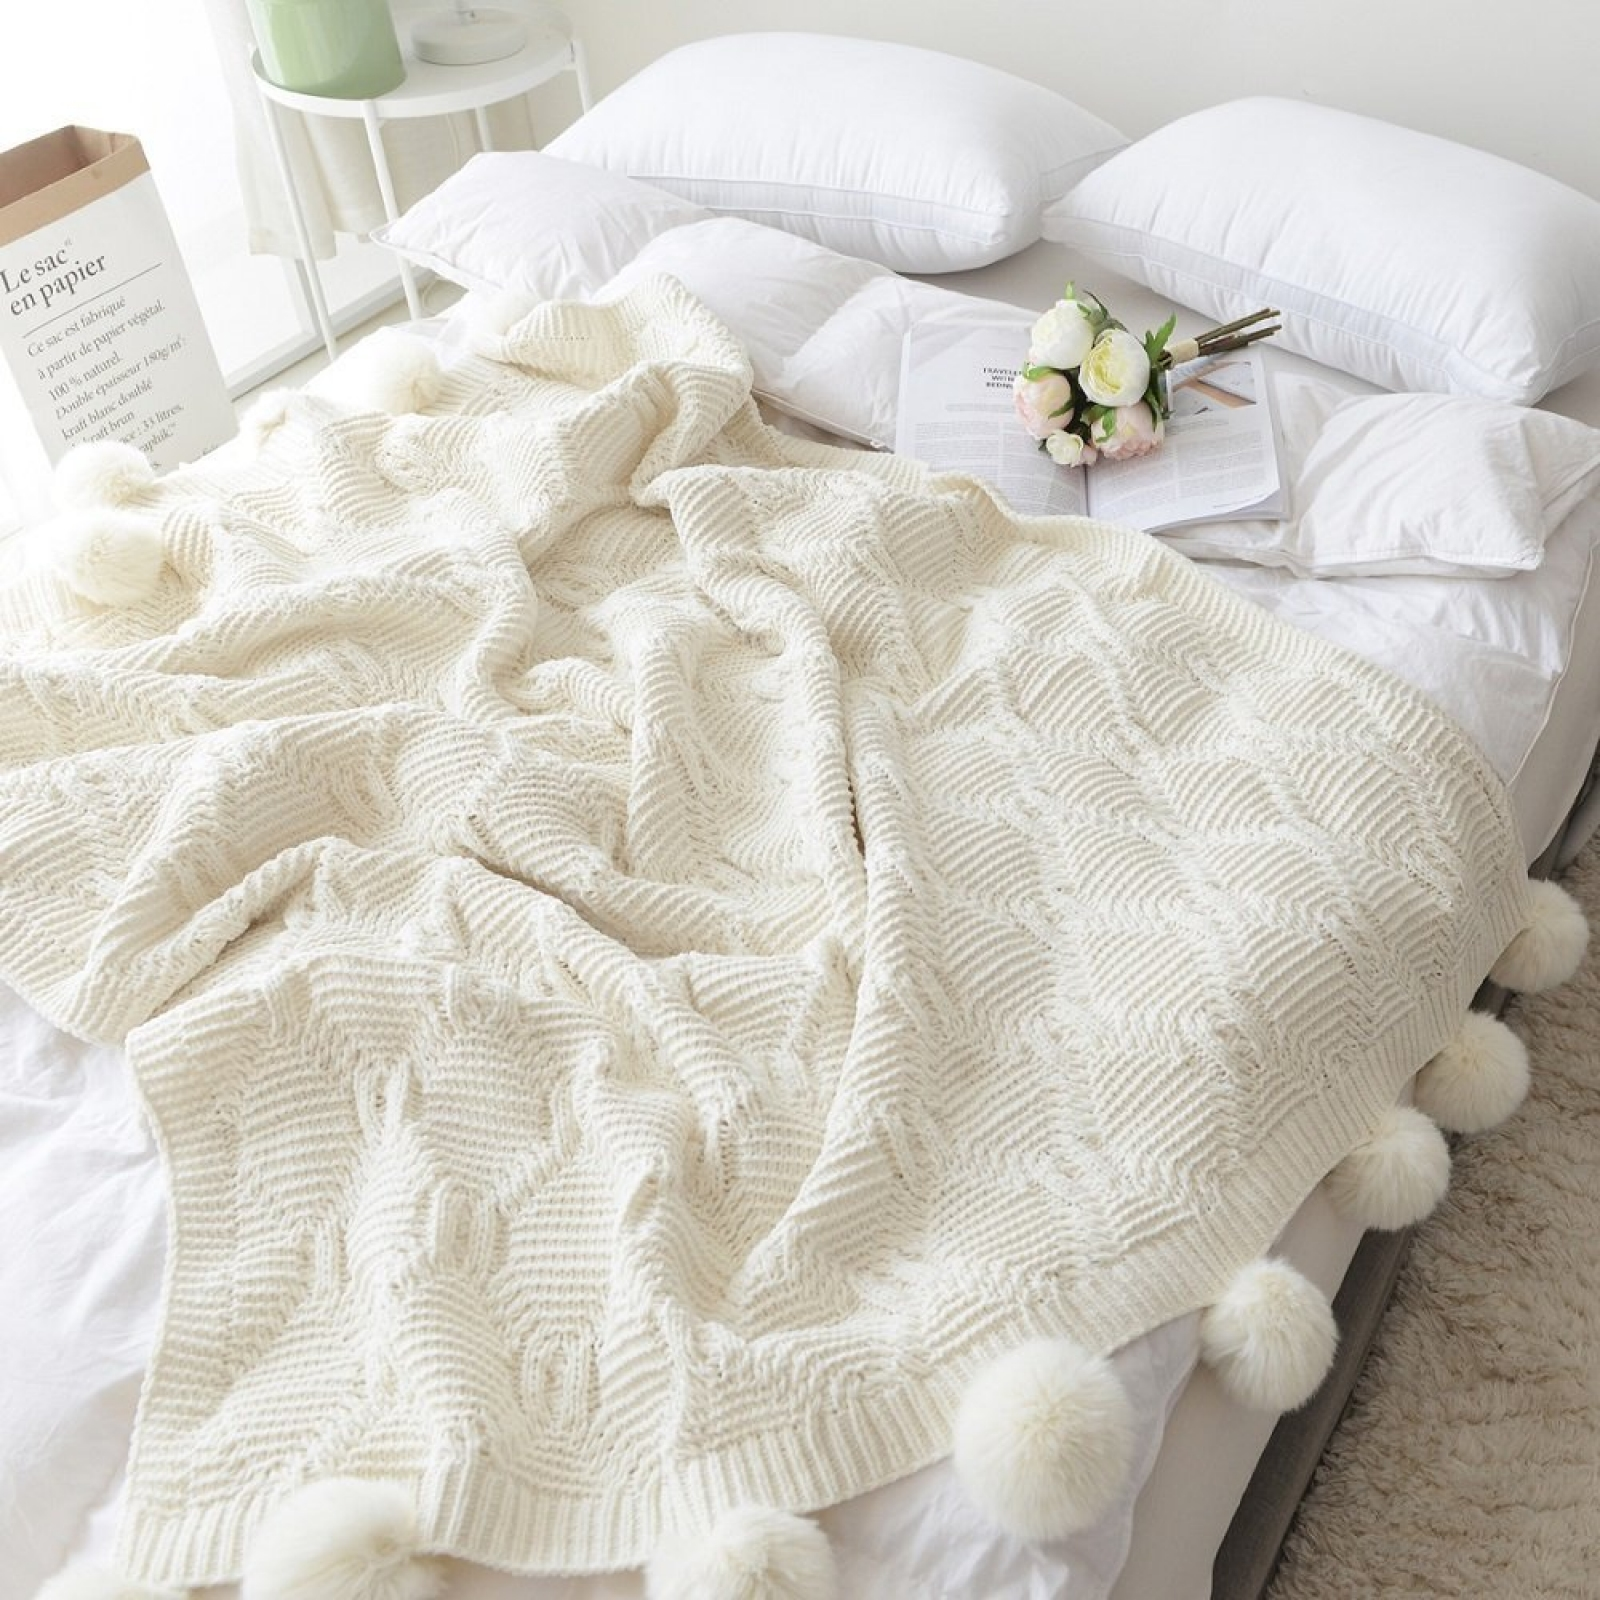 Lounge Throw Pom Pom Plush Throw Blanket Luxurious Lovely Lounge Cover Knitted